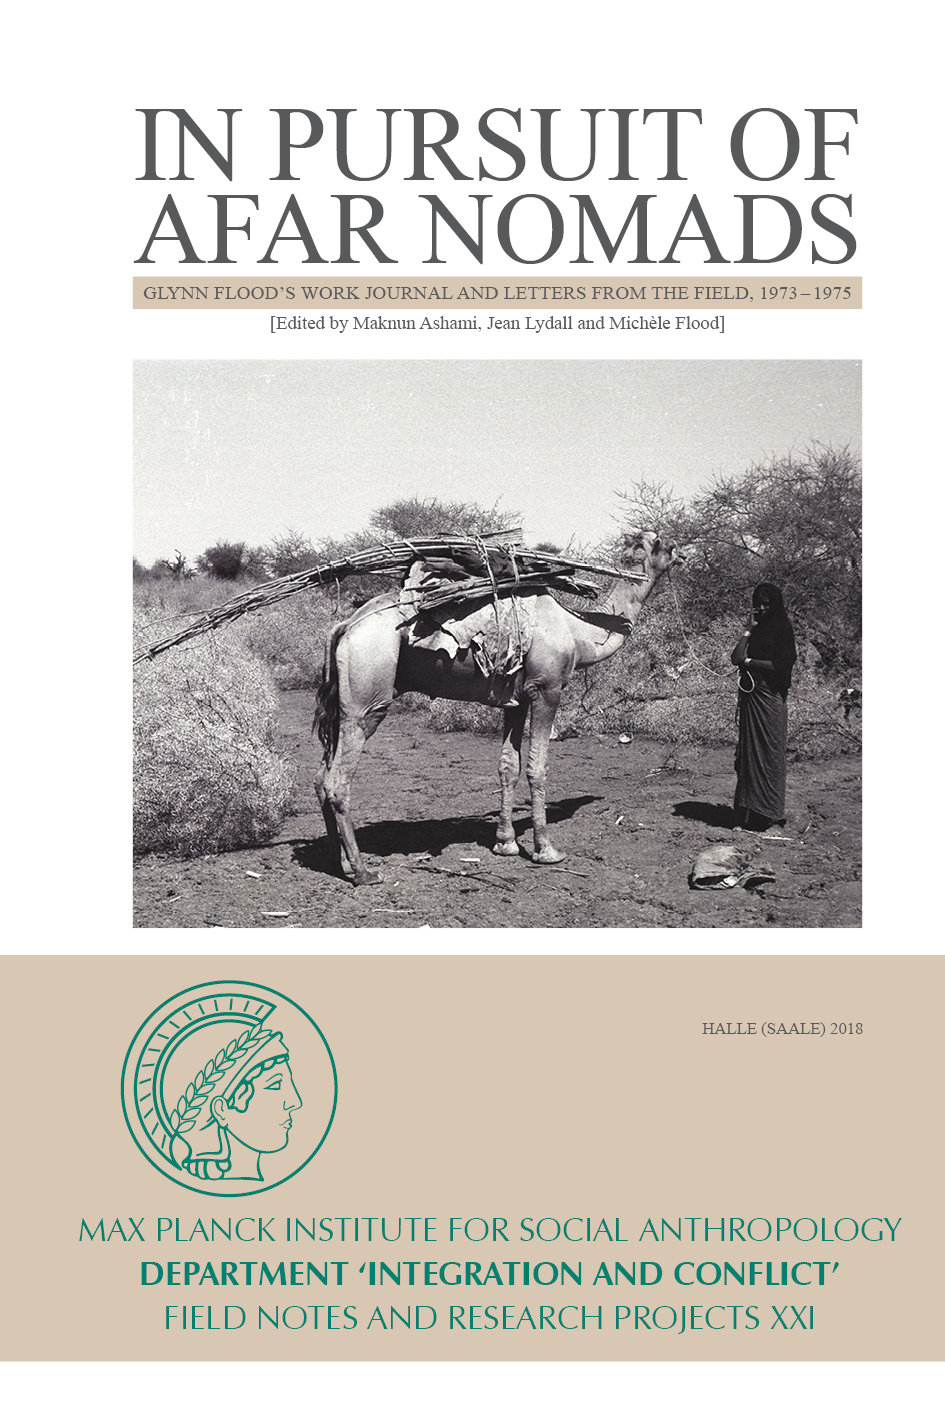 In Pursuit of Afar Nomads. Glynn Flood's Work Journal and Letters From the Field, 1973 - 1975[edited by Maknun Ashami, Jean Lydall and Michèle Flood]Permalinkhttp://www.eth.mpg.de/pubs/series_fieldnotes/vol0021.html